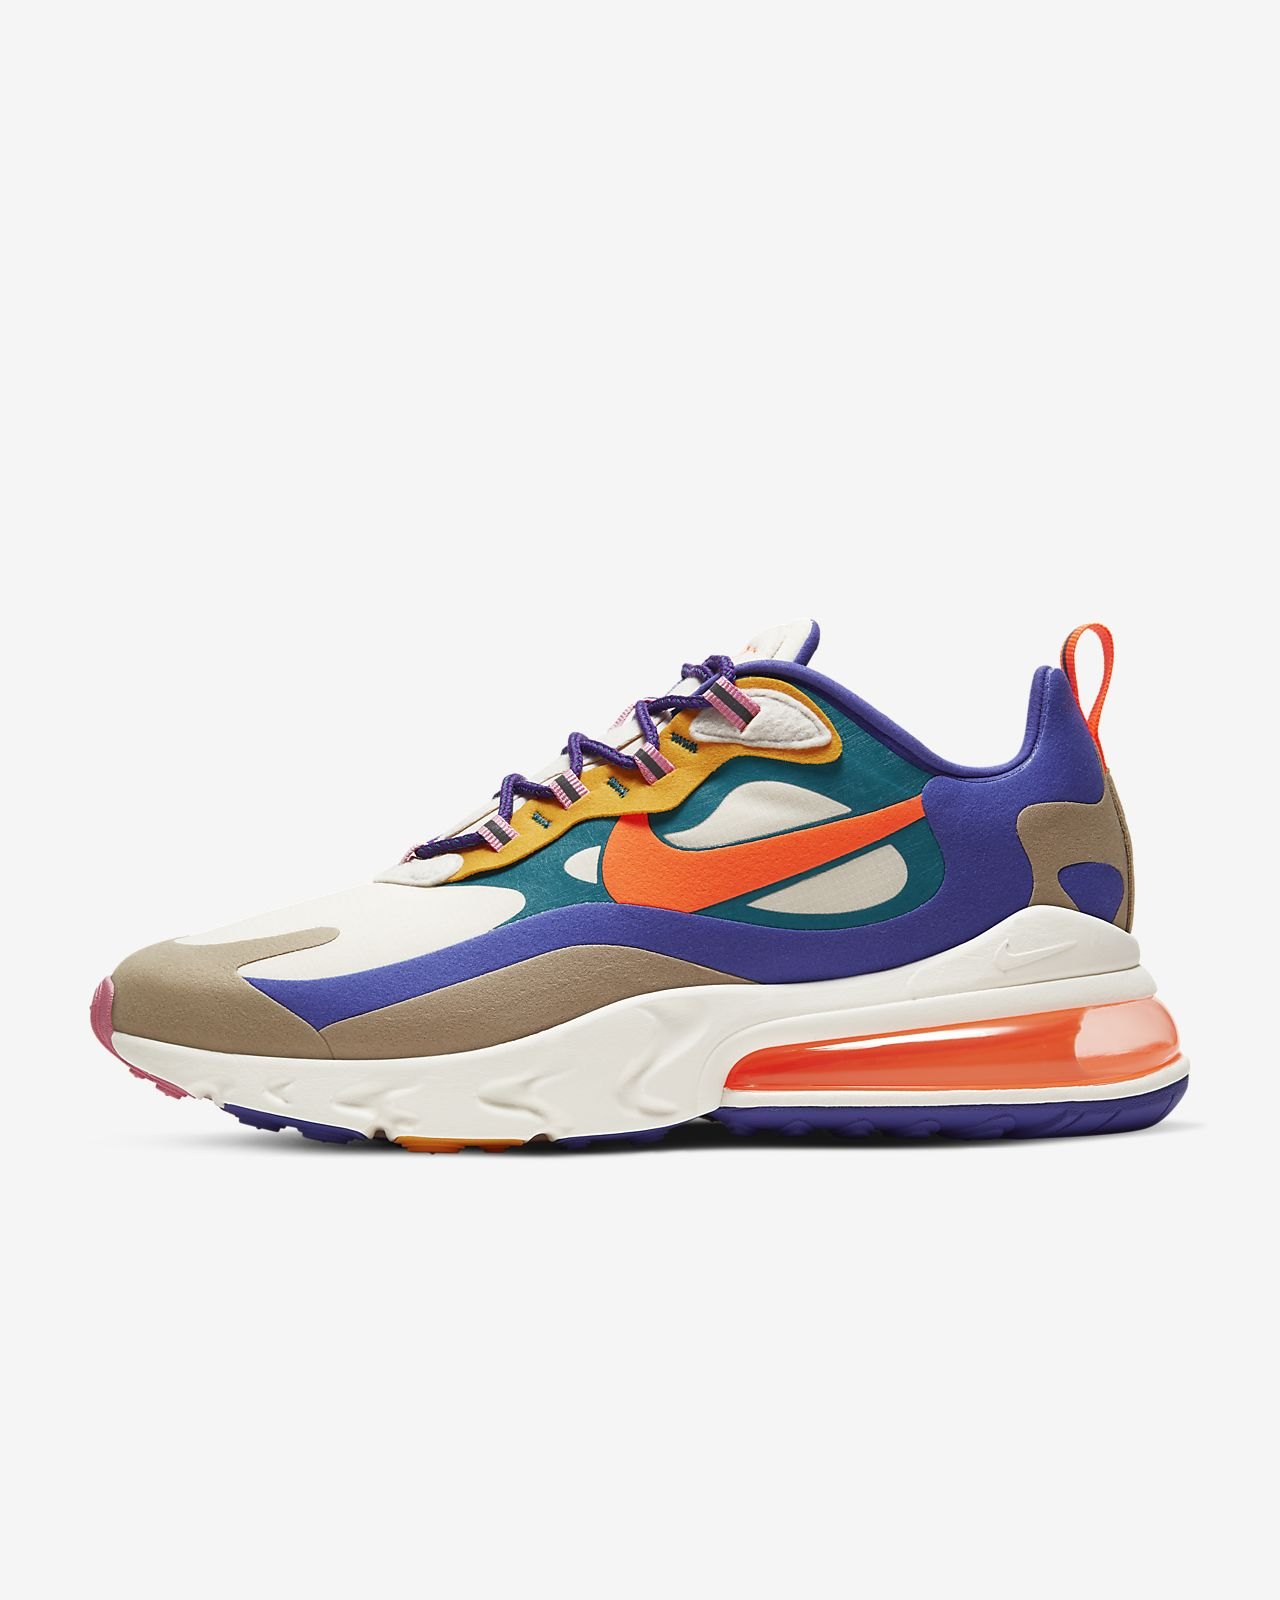 air max 270 uomo react